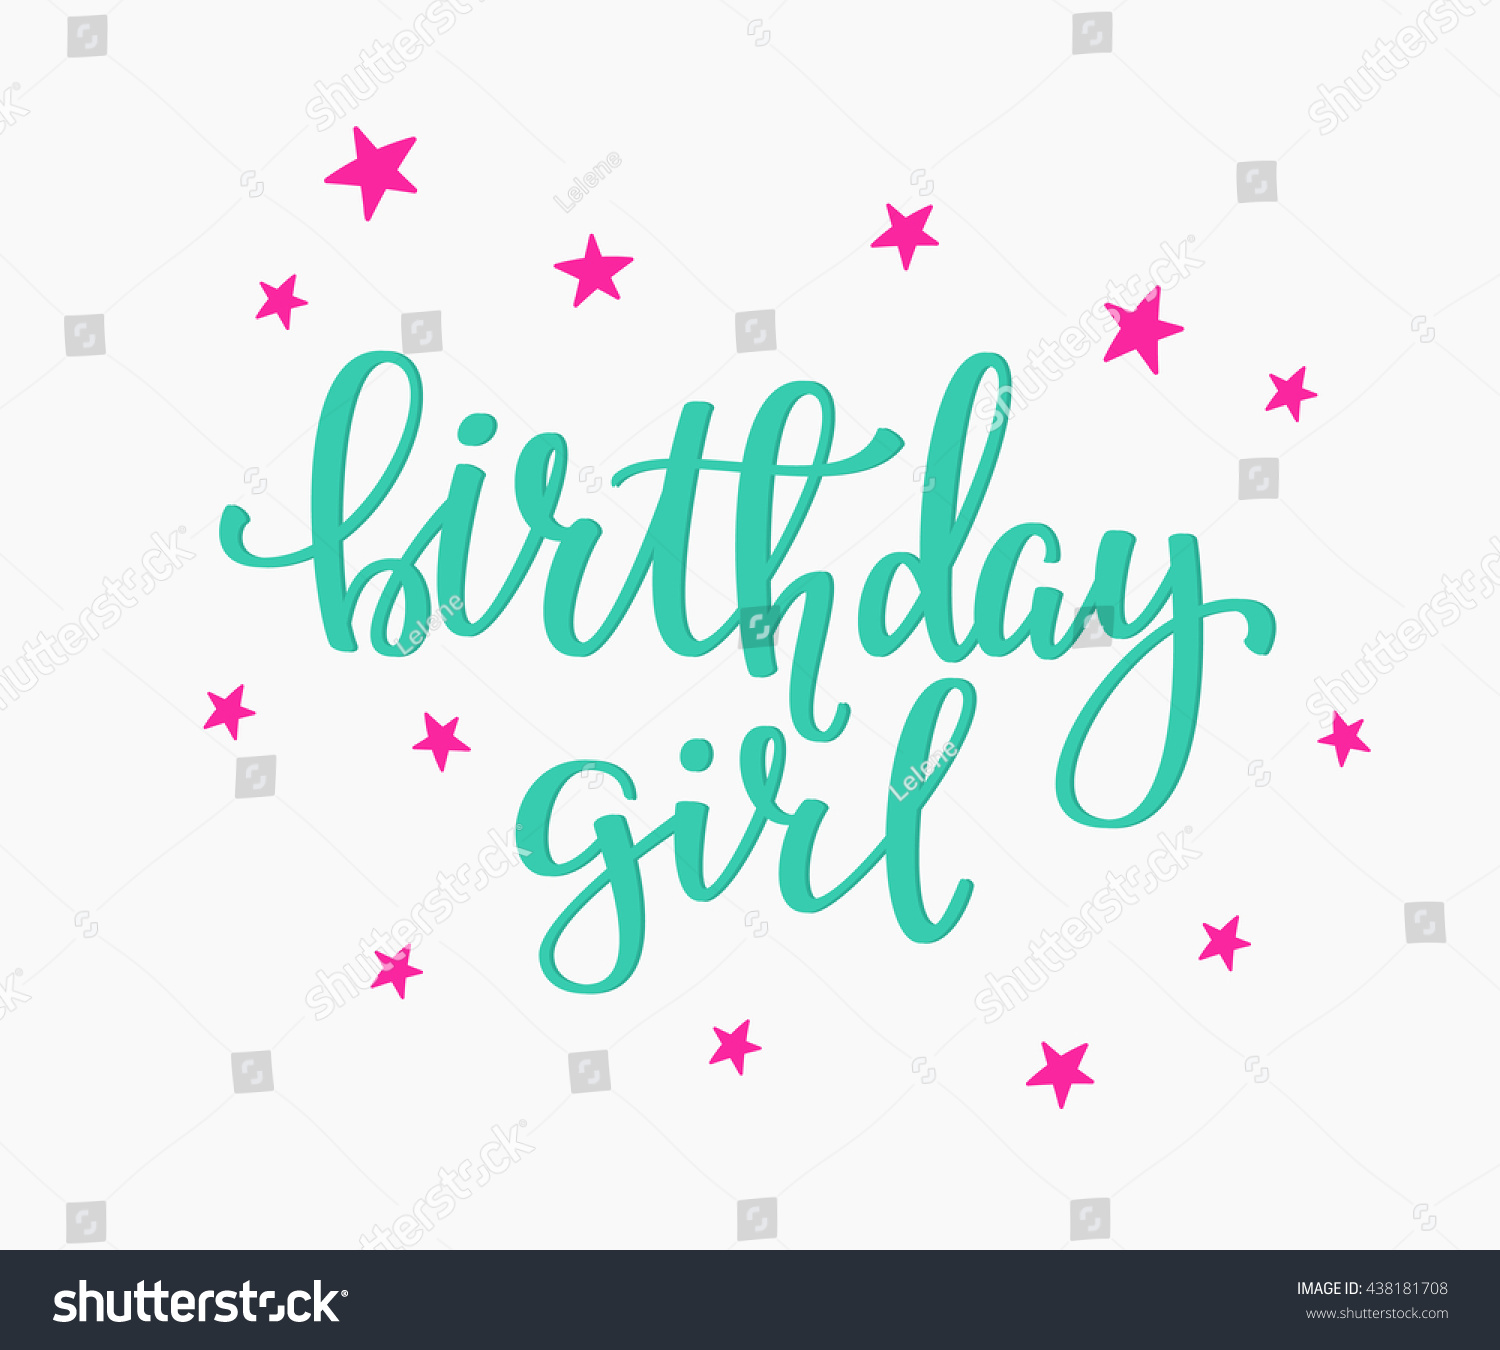 birthday girl sign ; avopix-438181708